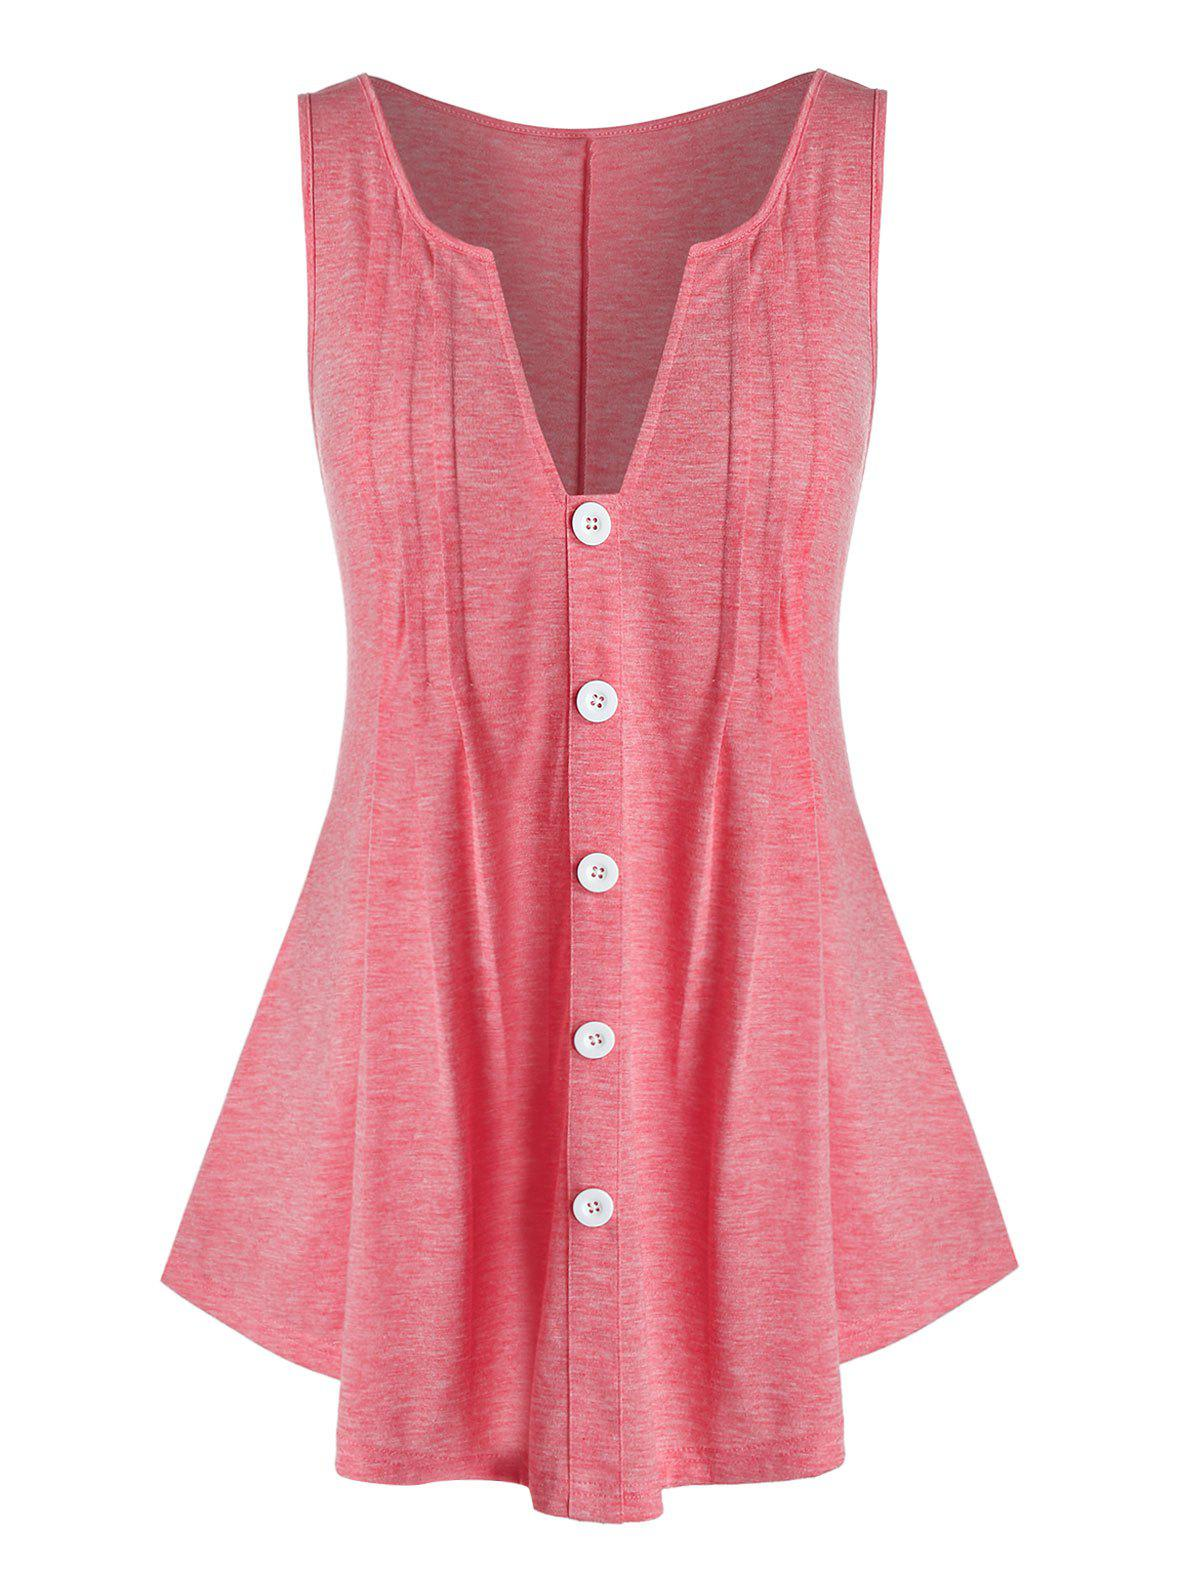 Plus Size V Cut Buttoned Tunic Tank Top - PINK 5X